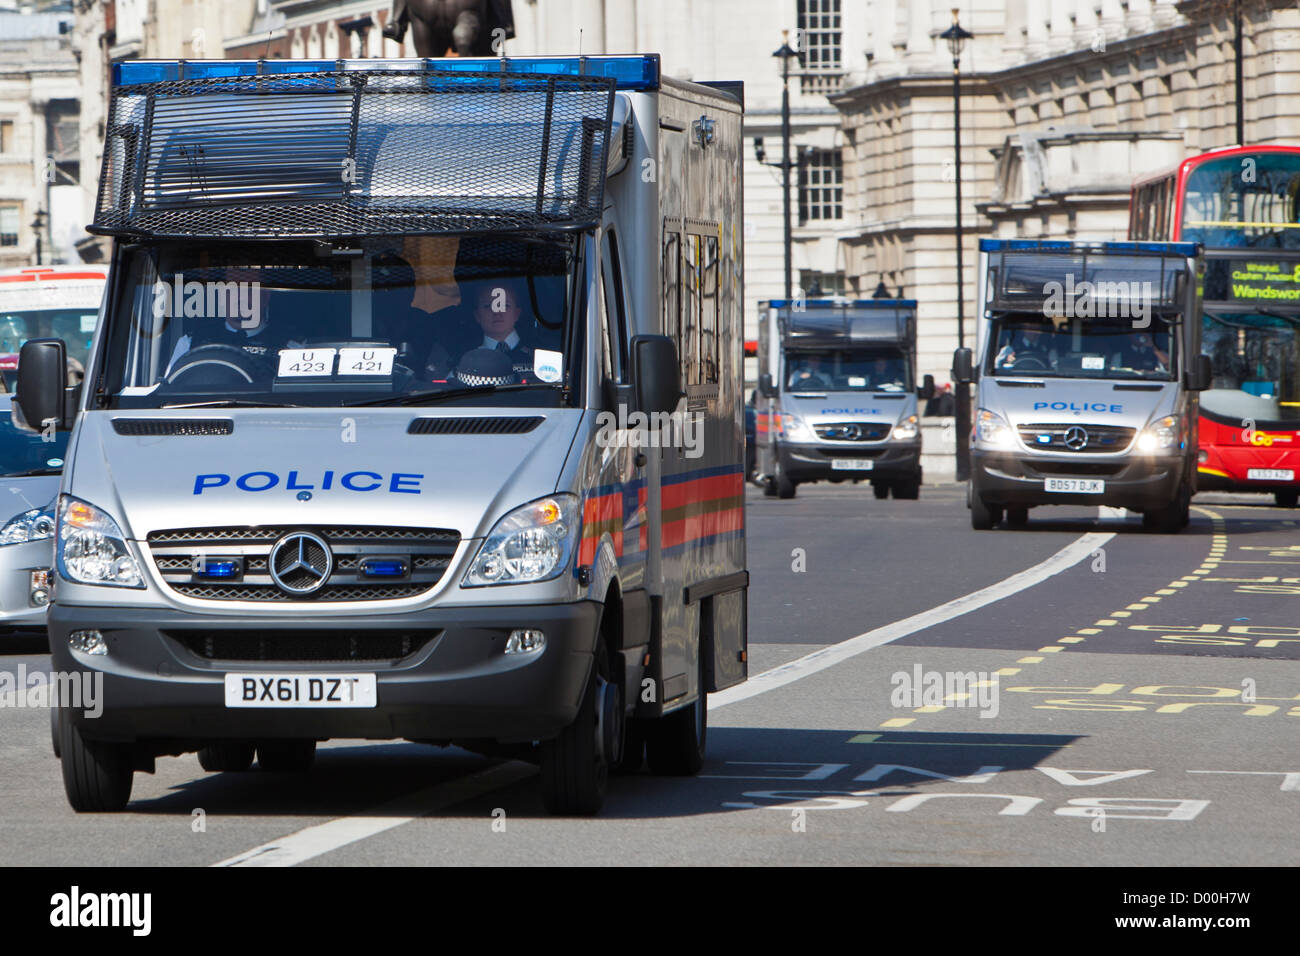 Three police riot vans, with sirens blaring, drive up a central London road, UK. - Stock Image